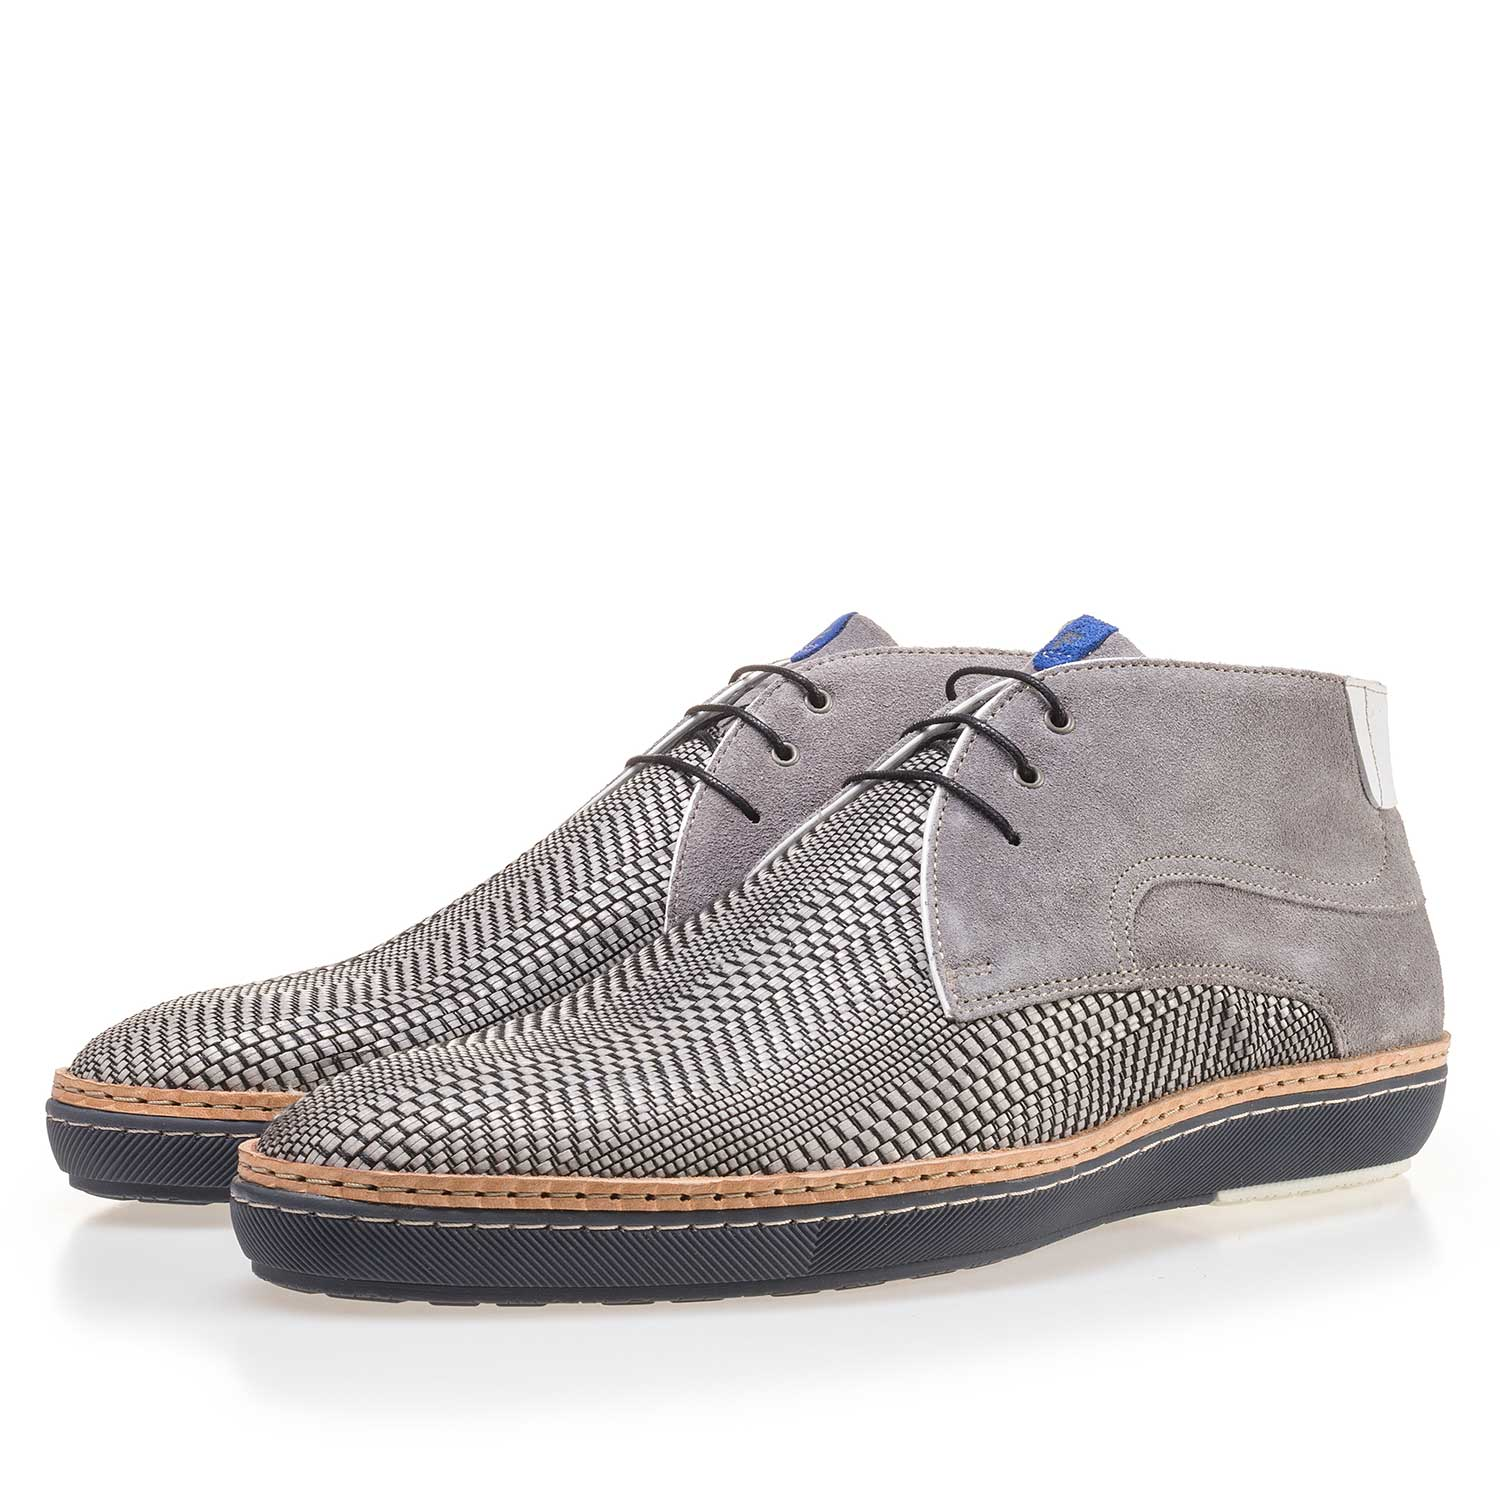 10017/00 - Grey braided leather lace boot